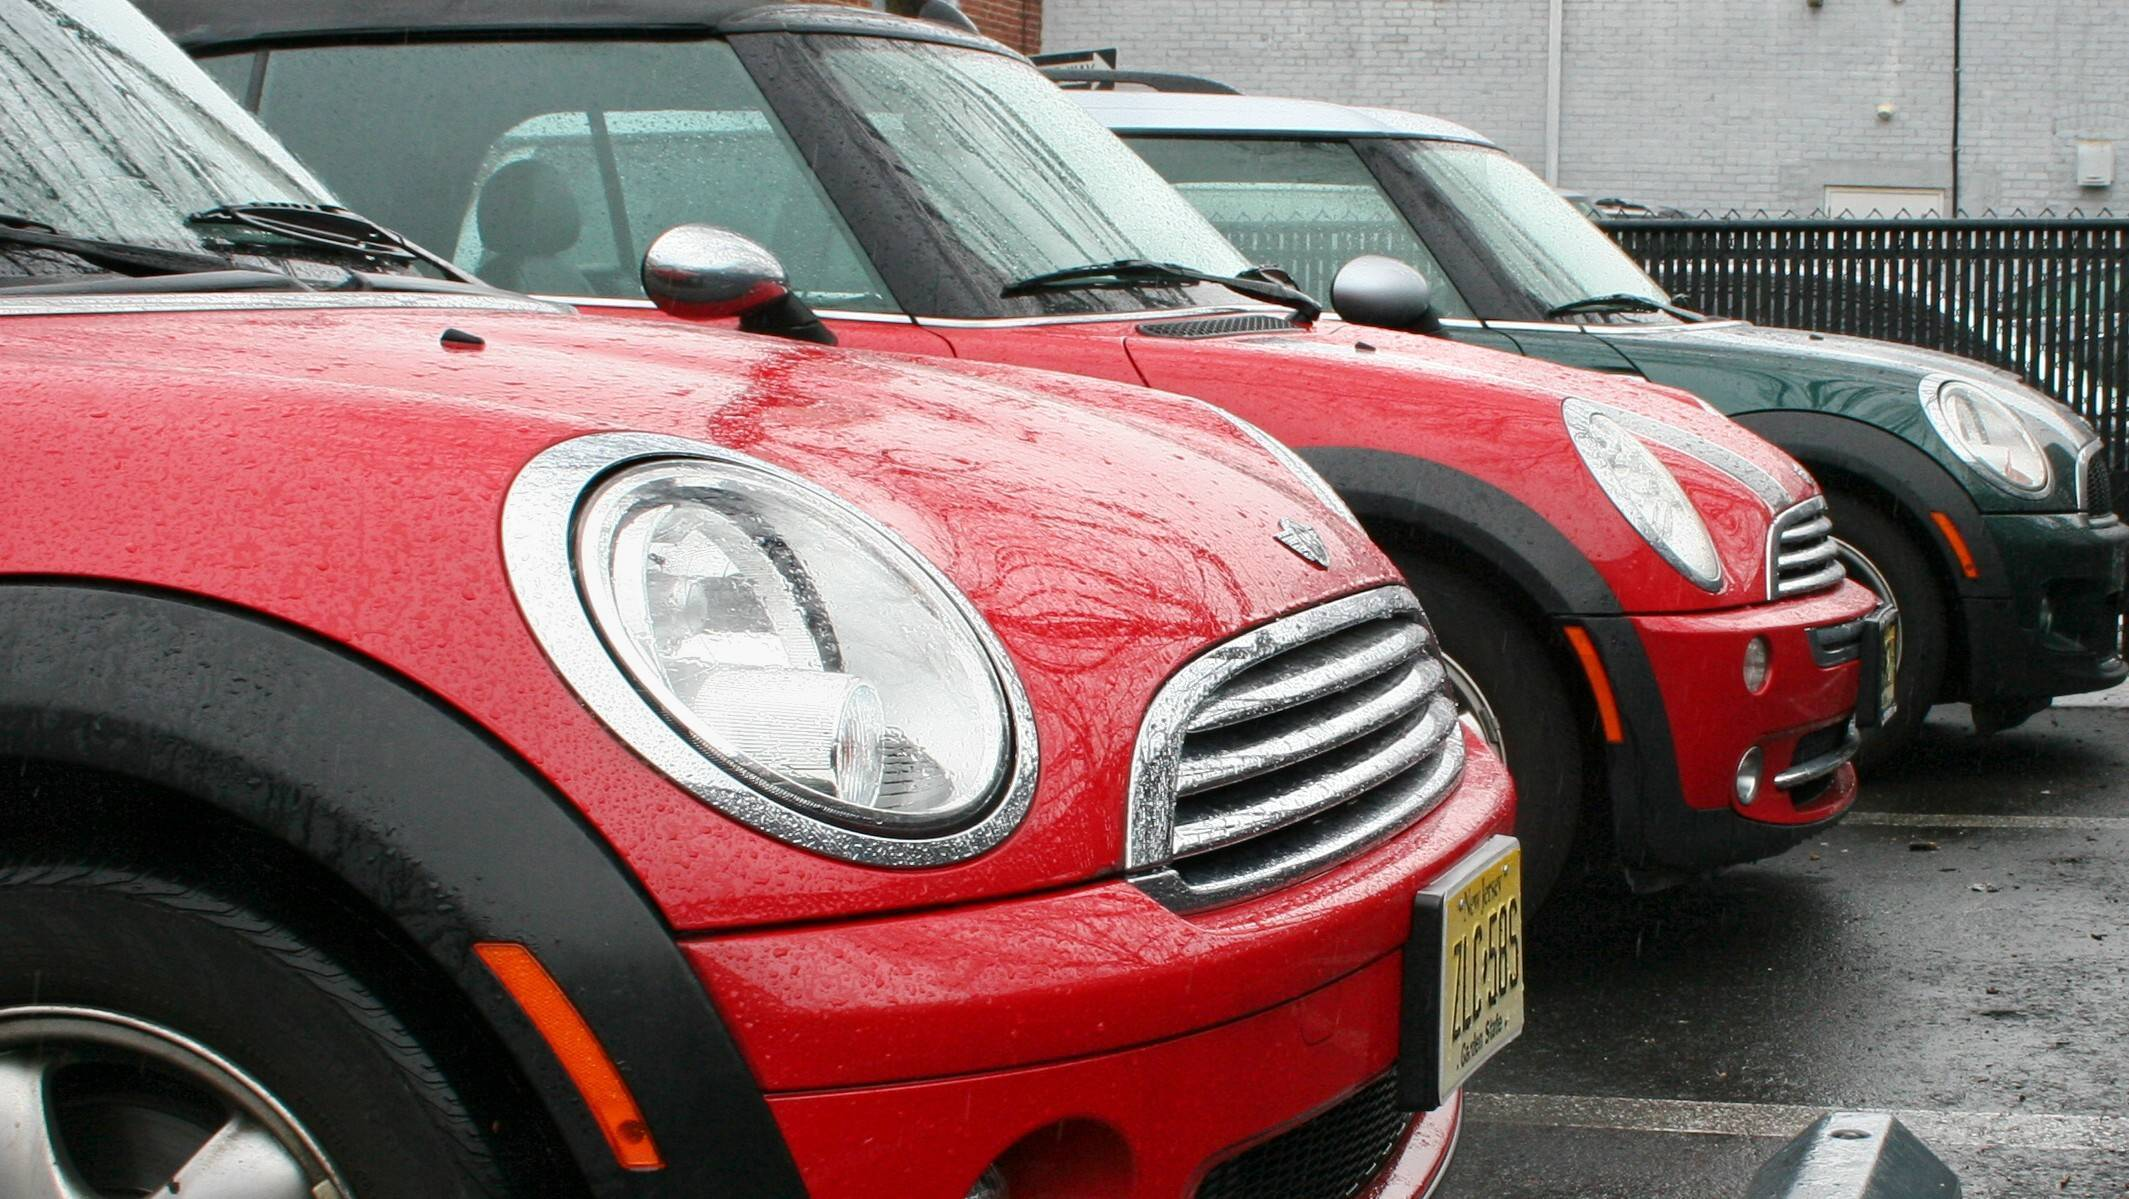 Nutley Police Department Reminds Residents to Lock Their Cars